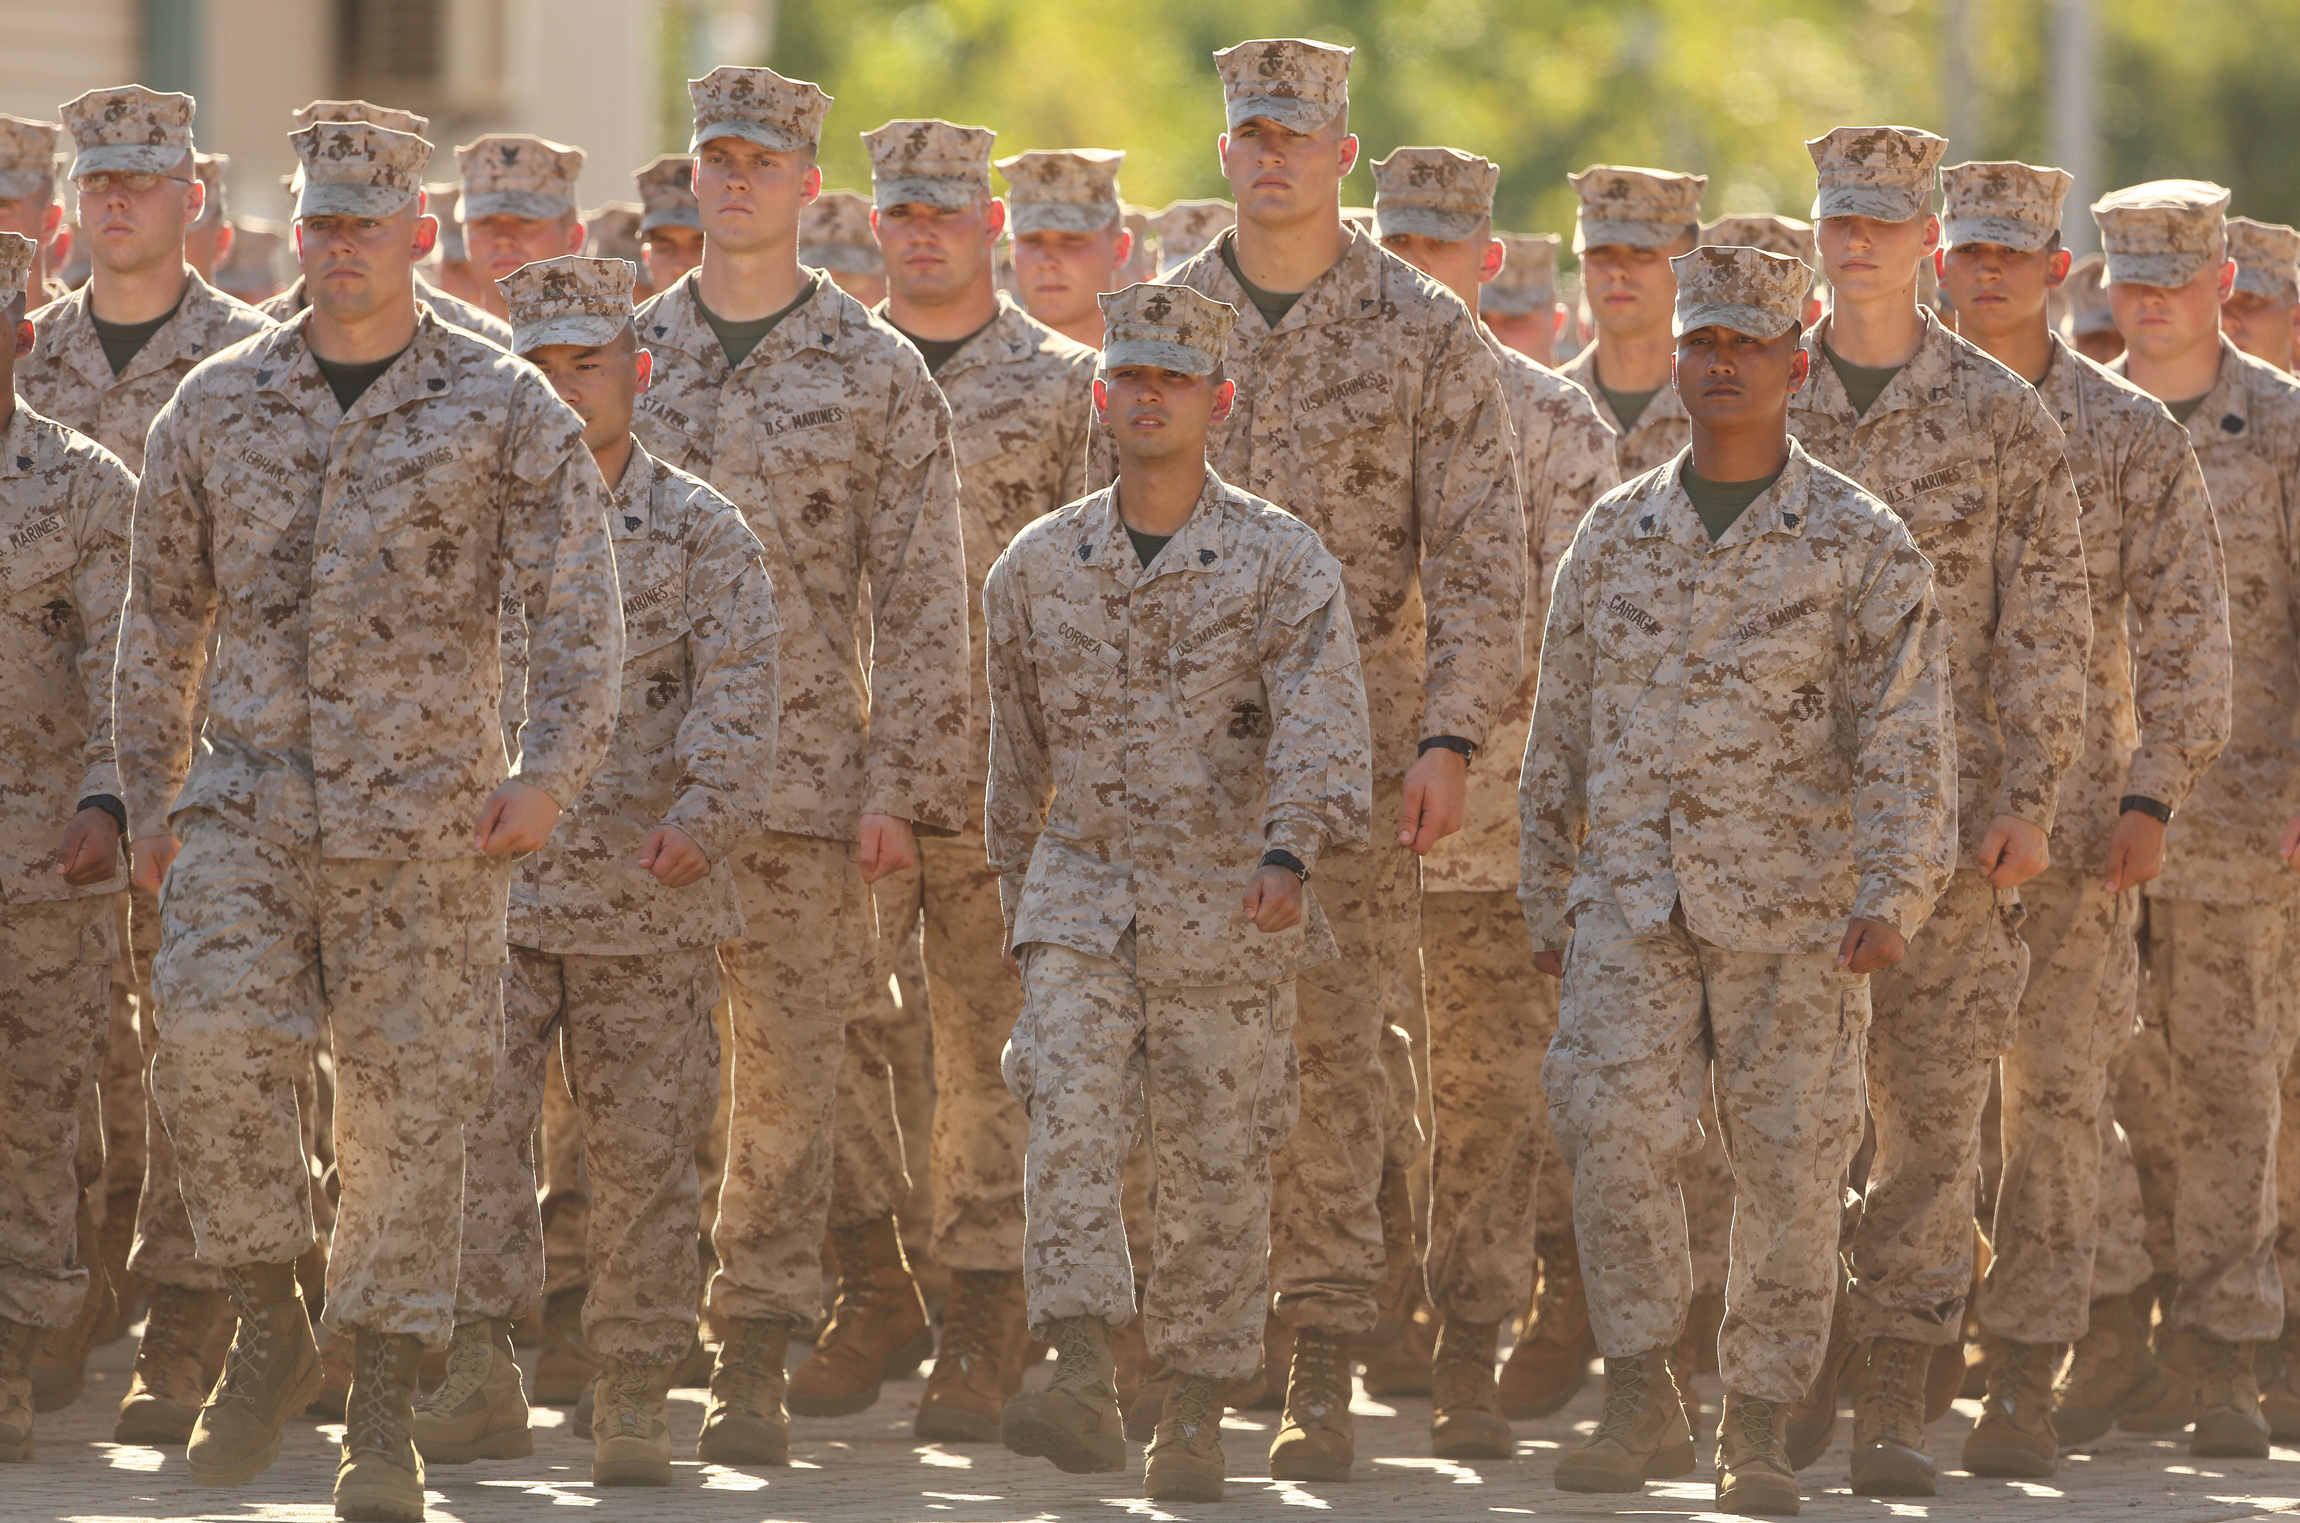 The first group of 200 U.S. Marines arrives at Darwin's Robertson Barracks for a 6-month training rotation, April 2012.